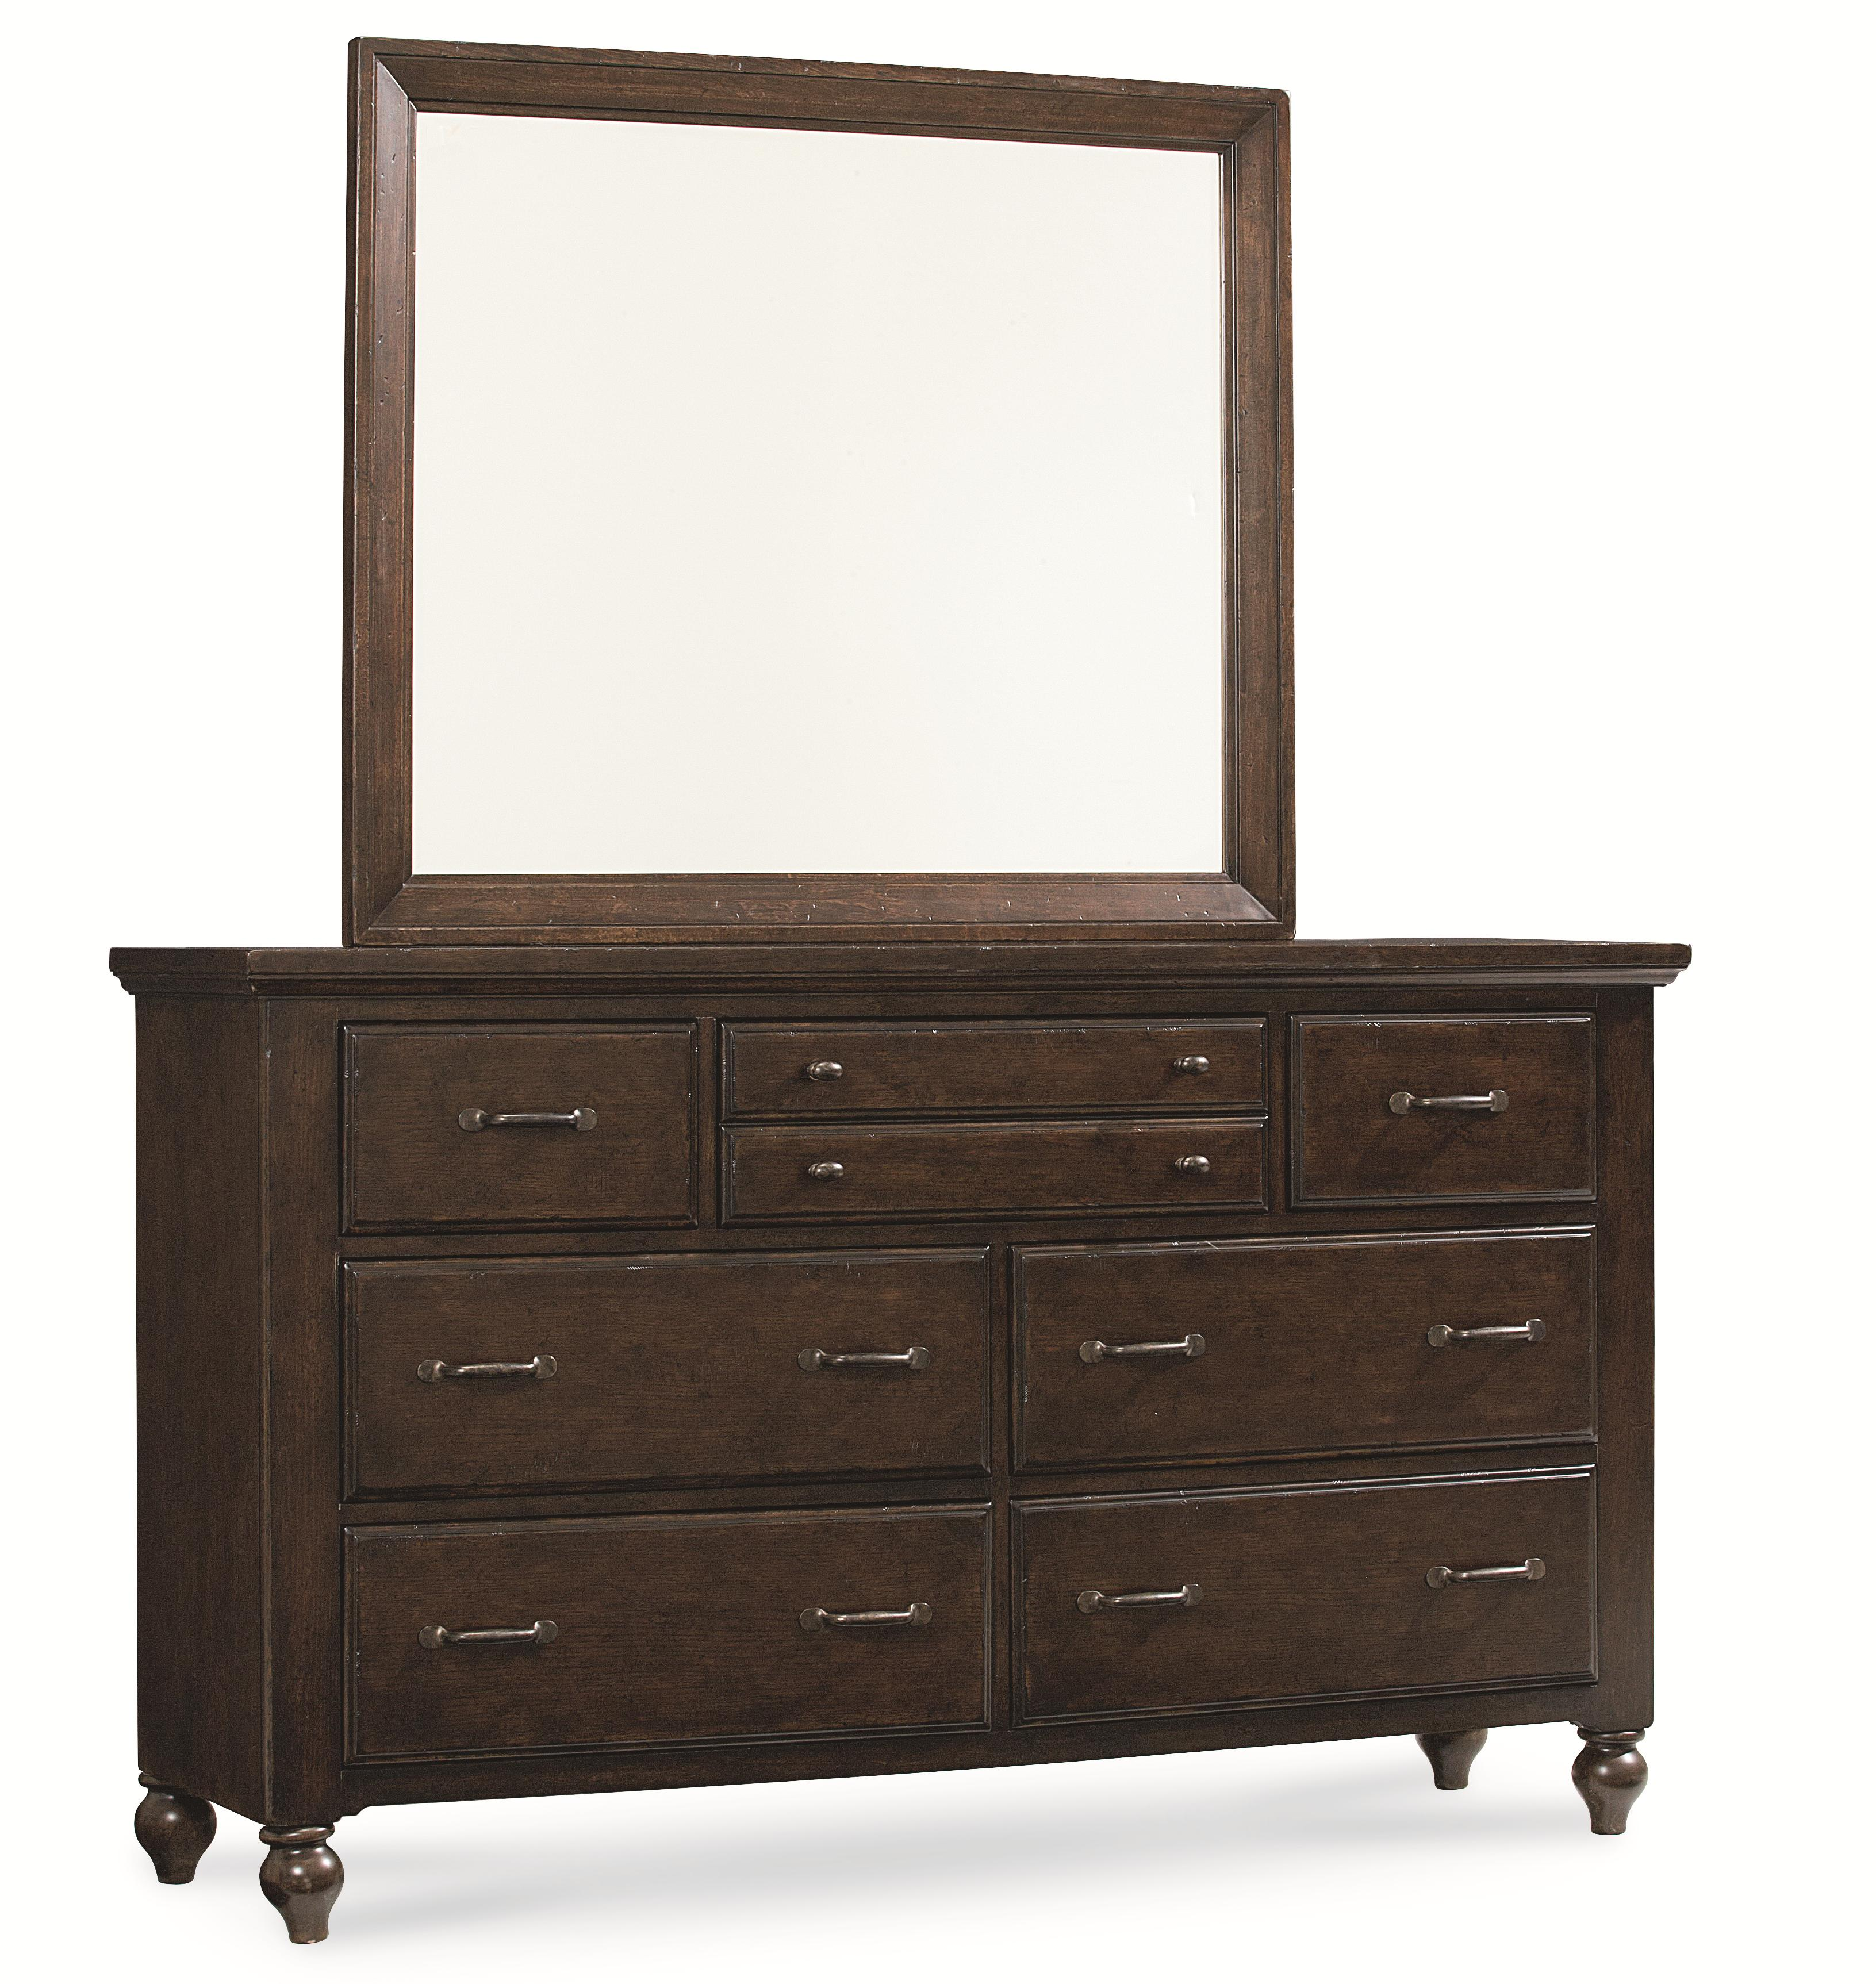 Legacy Classic Thatcher Dresser and Mirror Set - Item Number: 3700-1200+0100